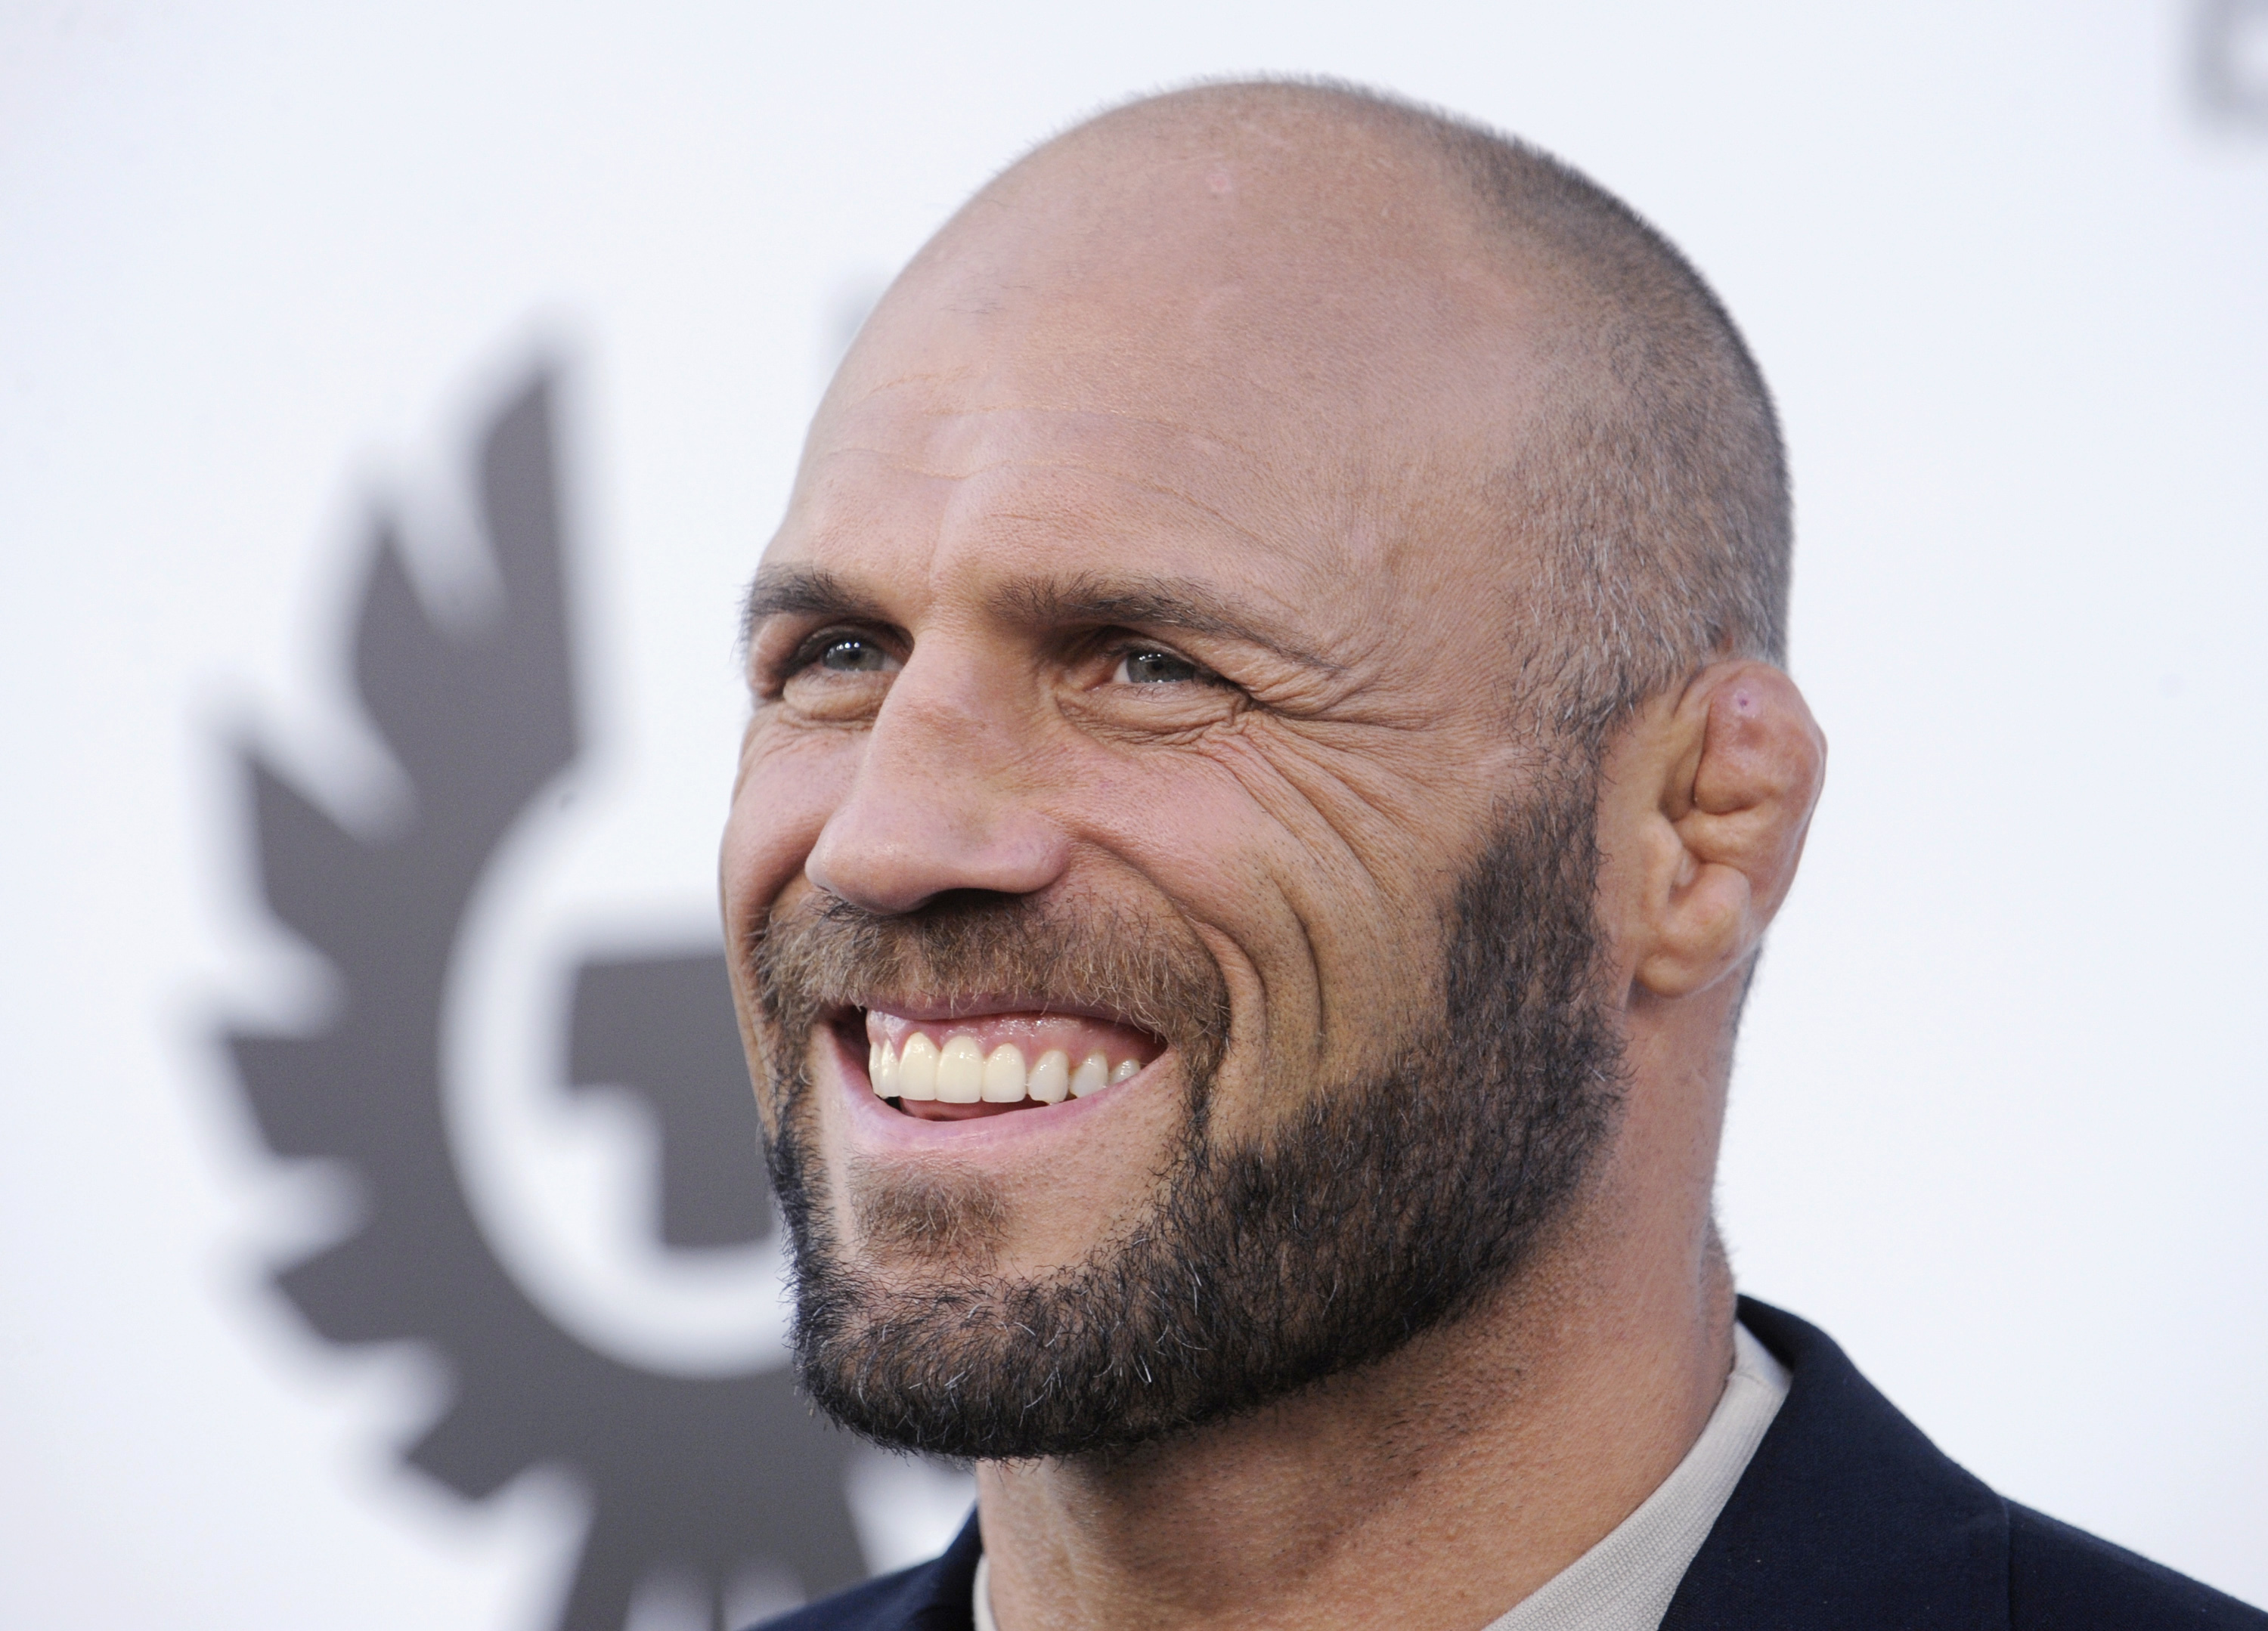 Randy Couture Computer Wallpaper